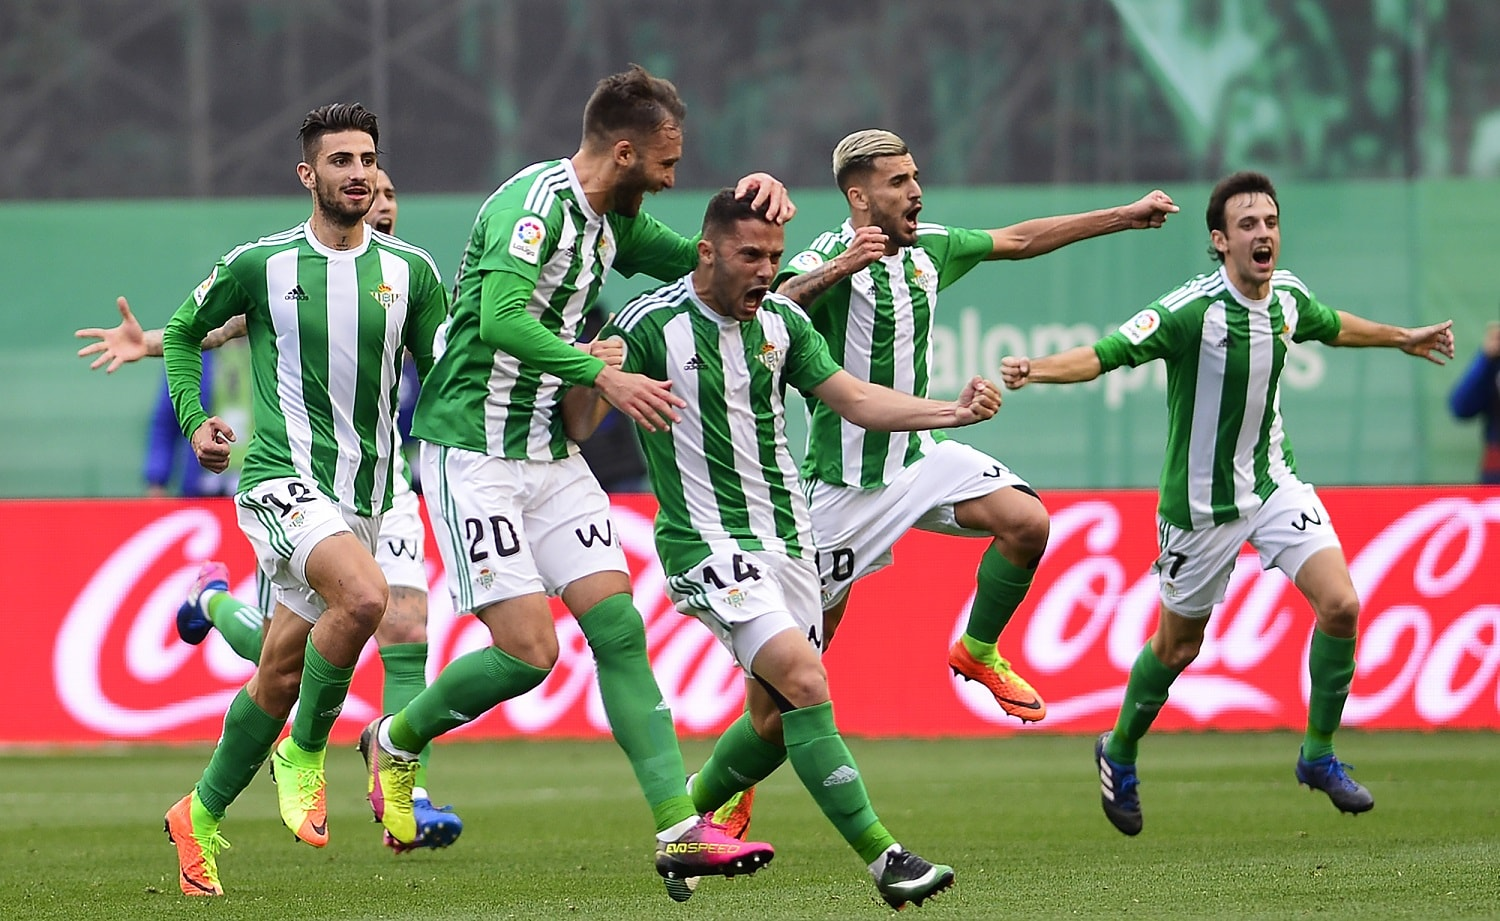 Betis vs Real Sociedad Betting Predictions